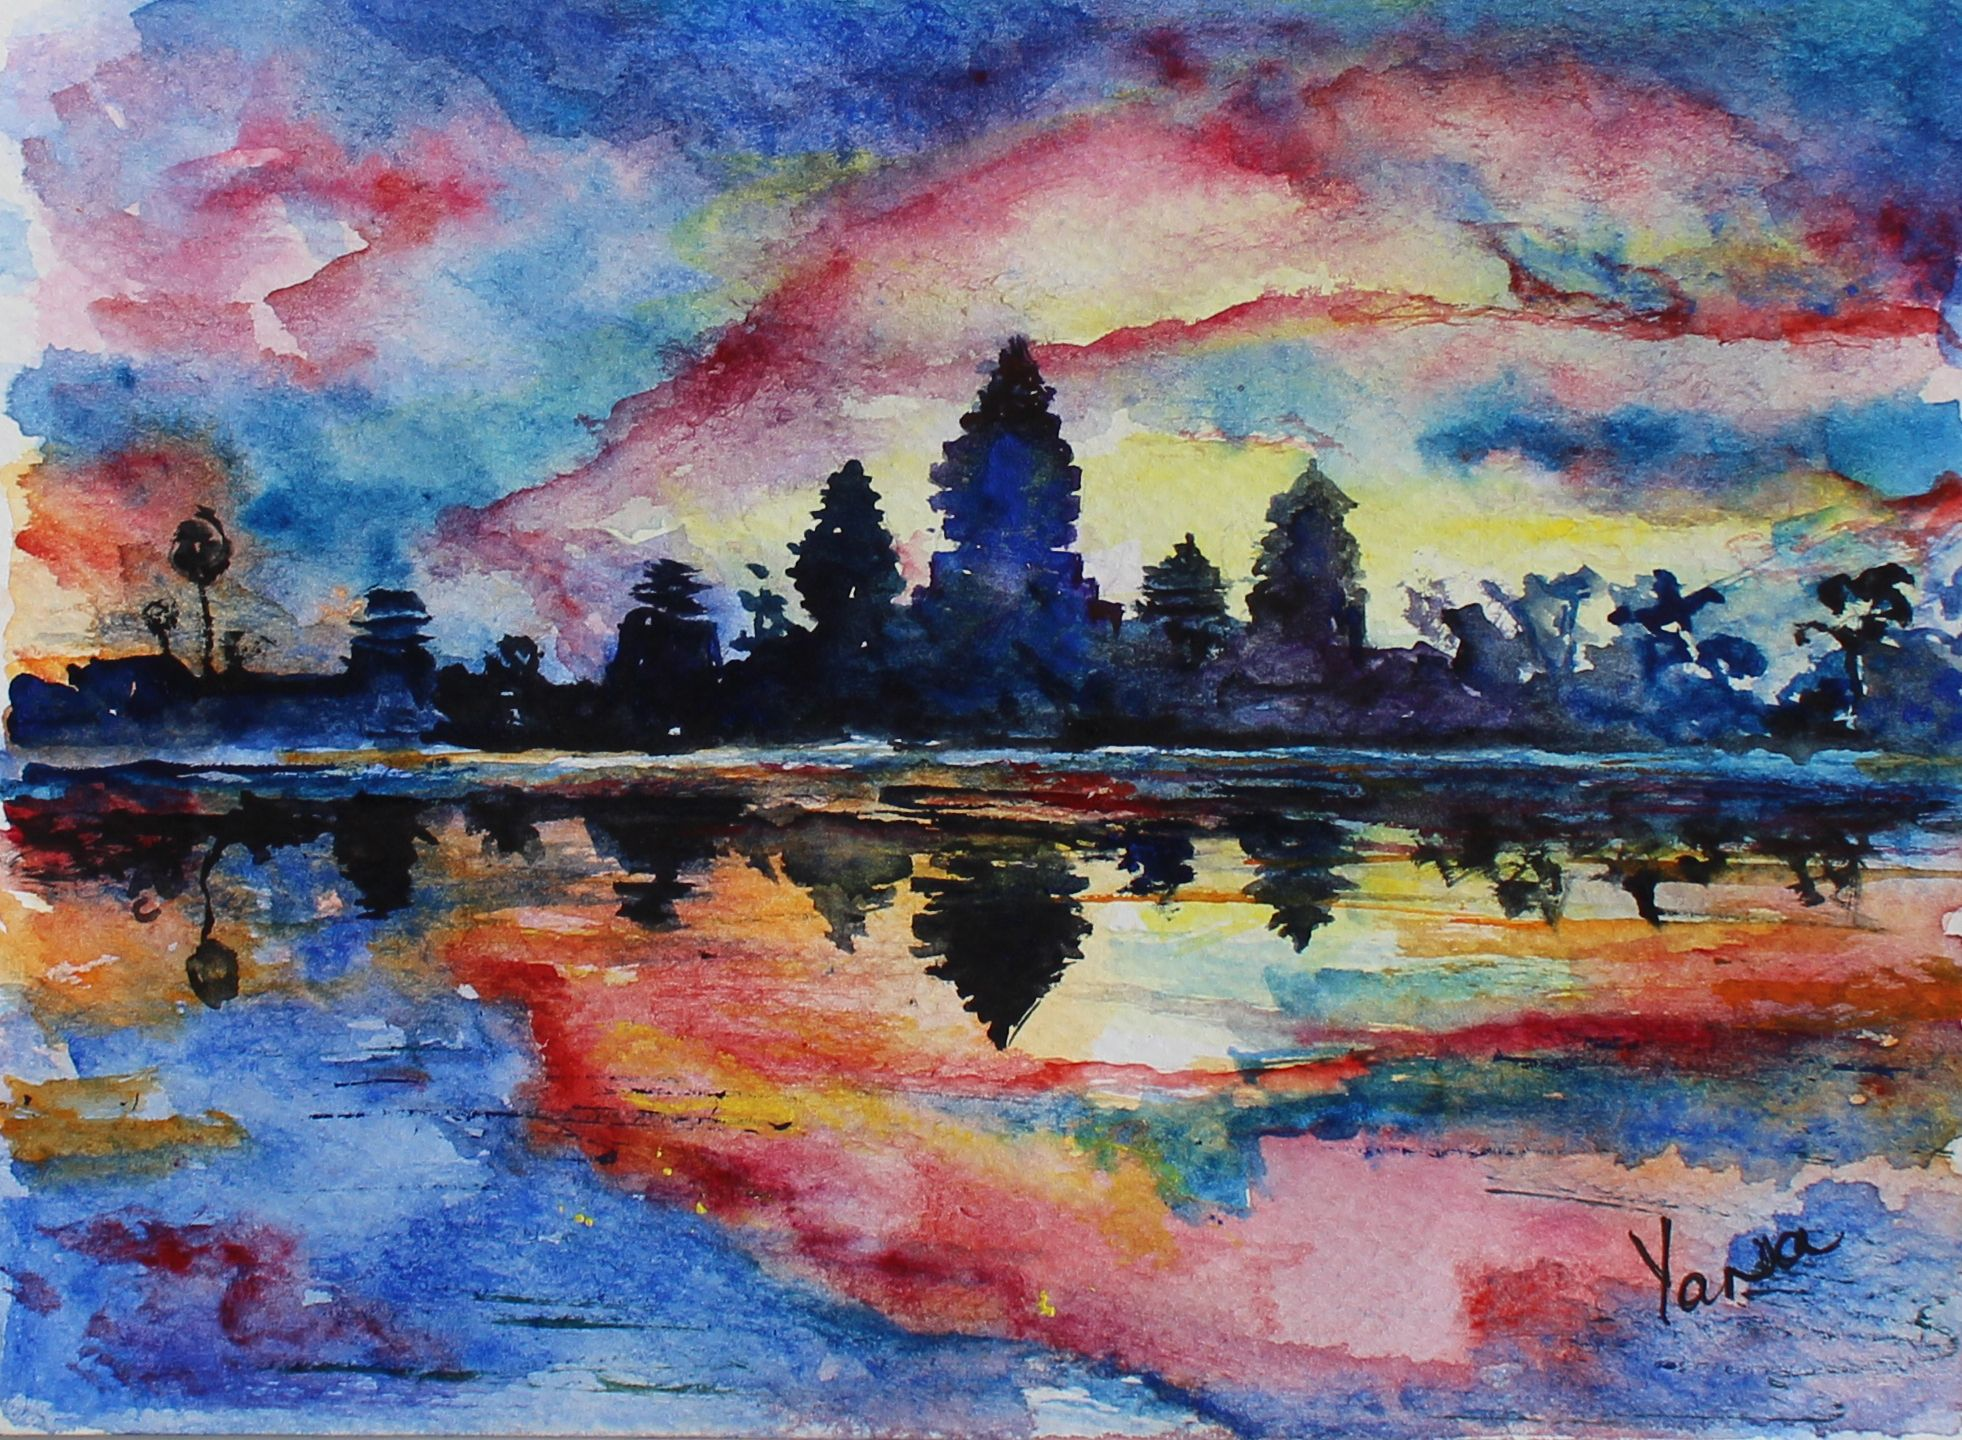 Original watercolor art for sale - Angkor Wat Cambodia Beautiful And Mysterious The Largest Religious Monument In The World Original Watercolor Artwork Available For Sale